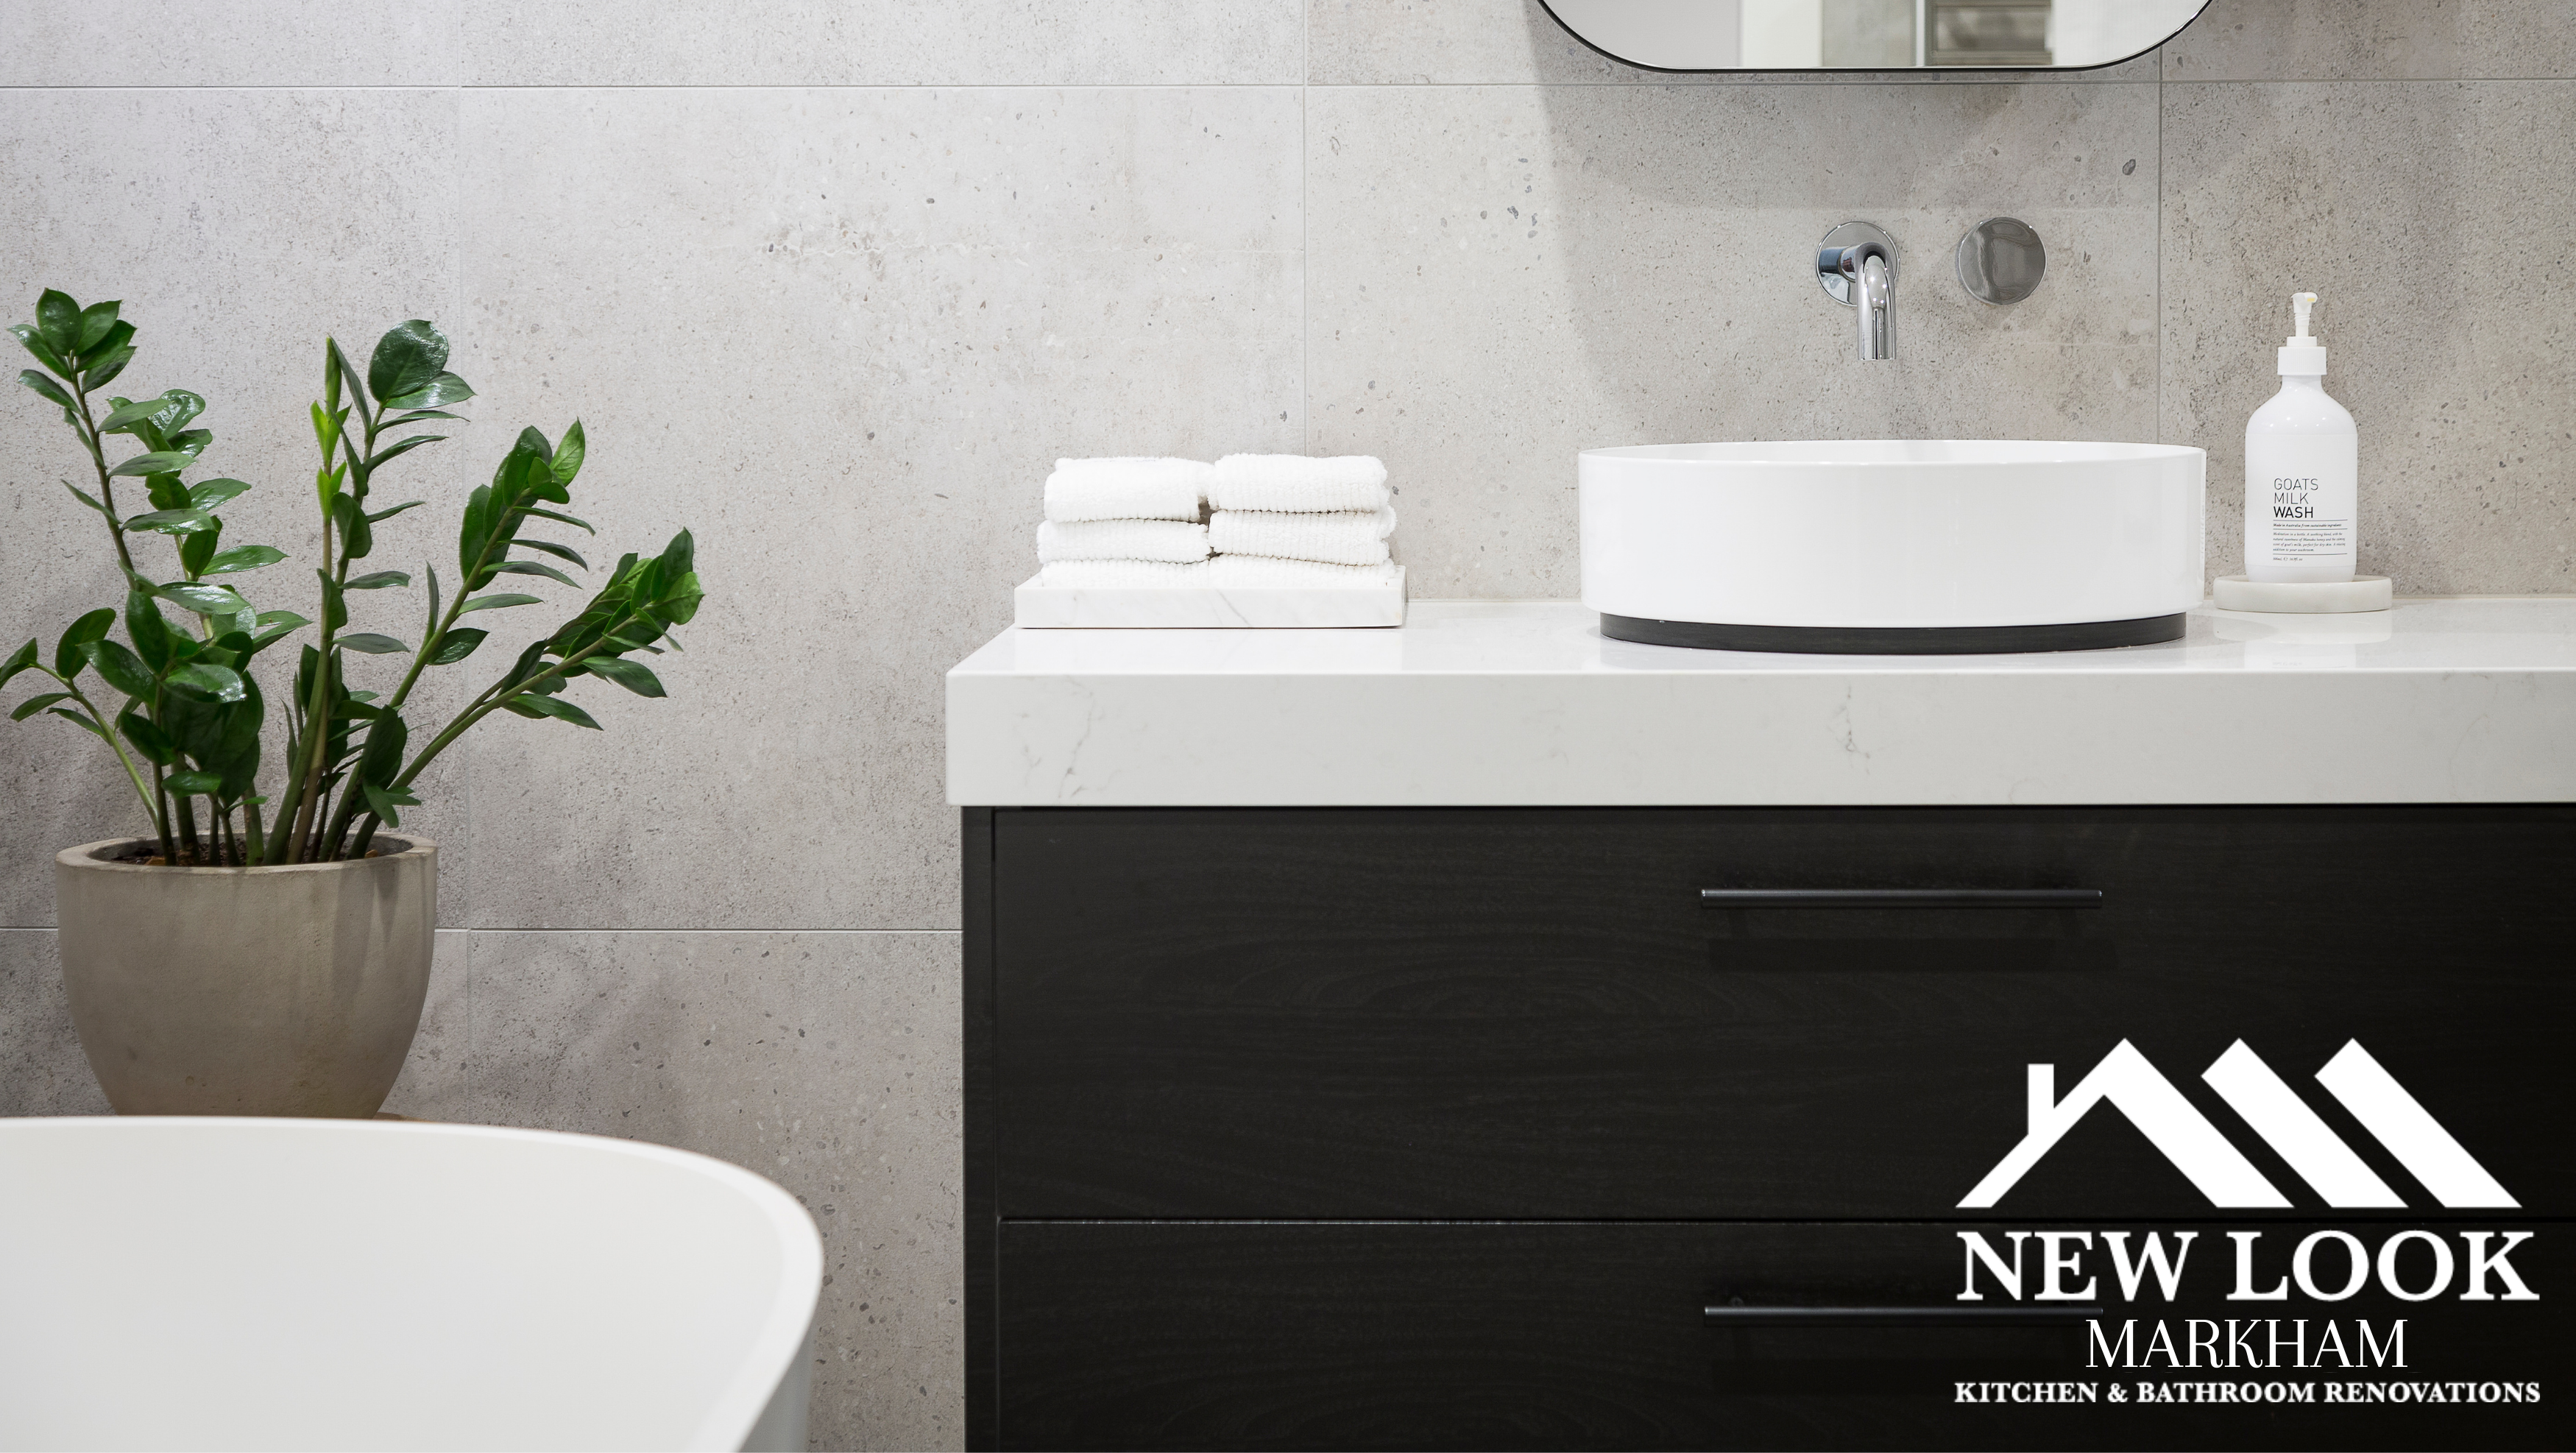 Black bathroom vanity with white countertop, white sink, white modern bathtub, and a green house plant.